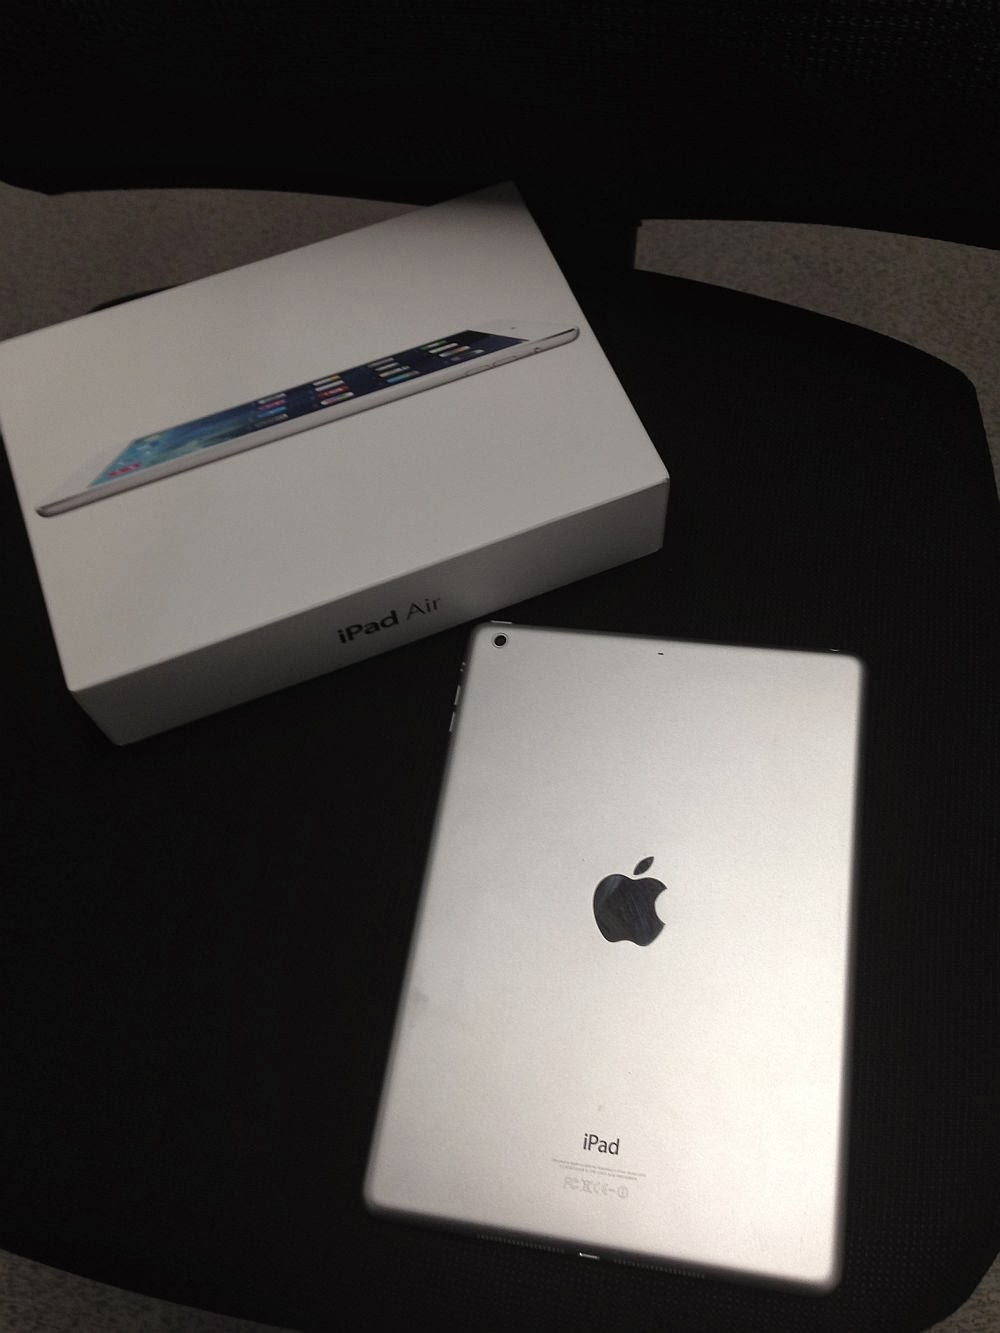 ipad air out of the box hands on